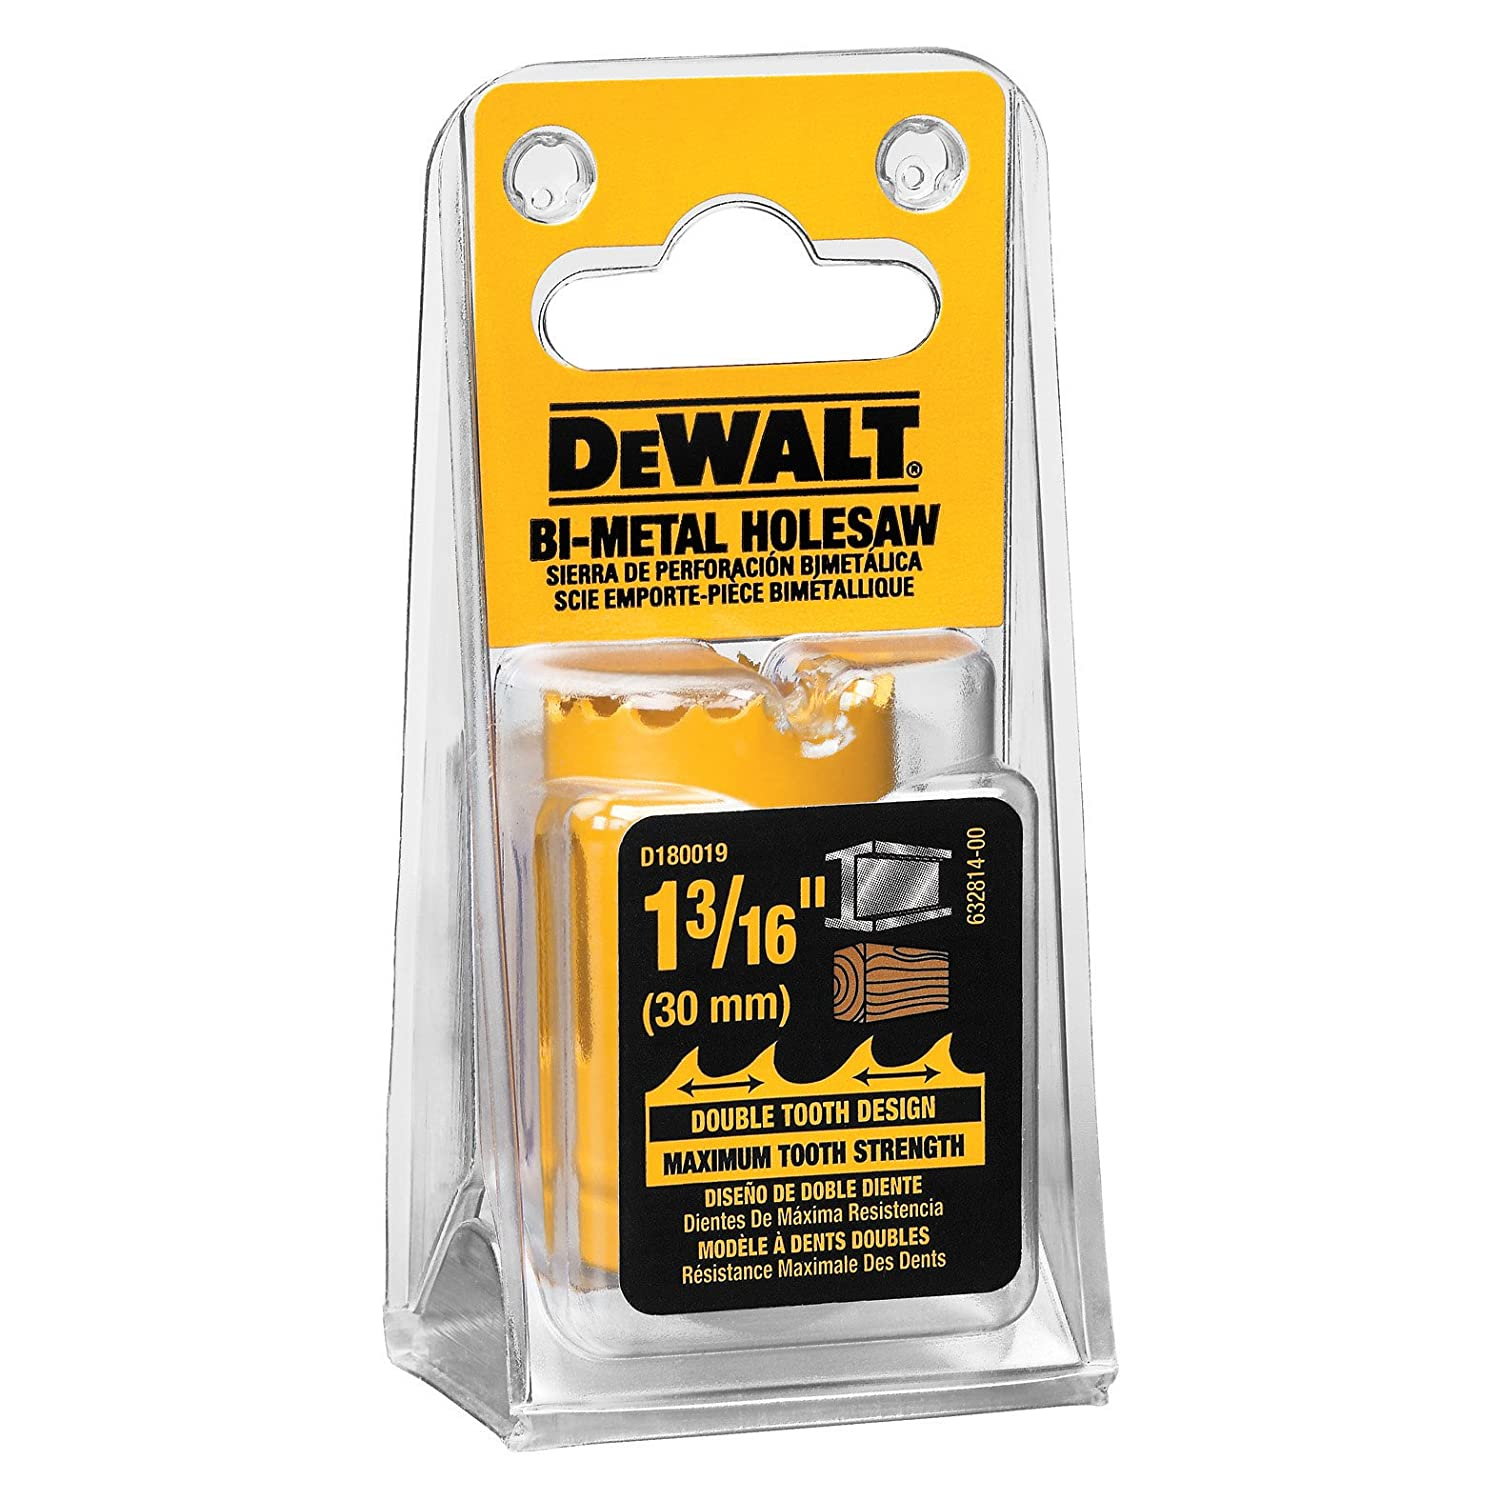 Dewalt D180019 1-3/16 Bi-Metal Hole Saw dewalt d 25820 k